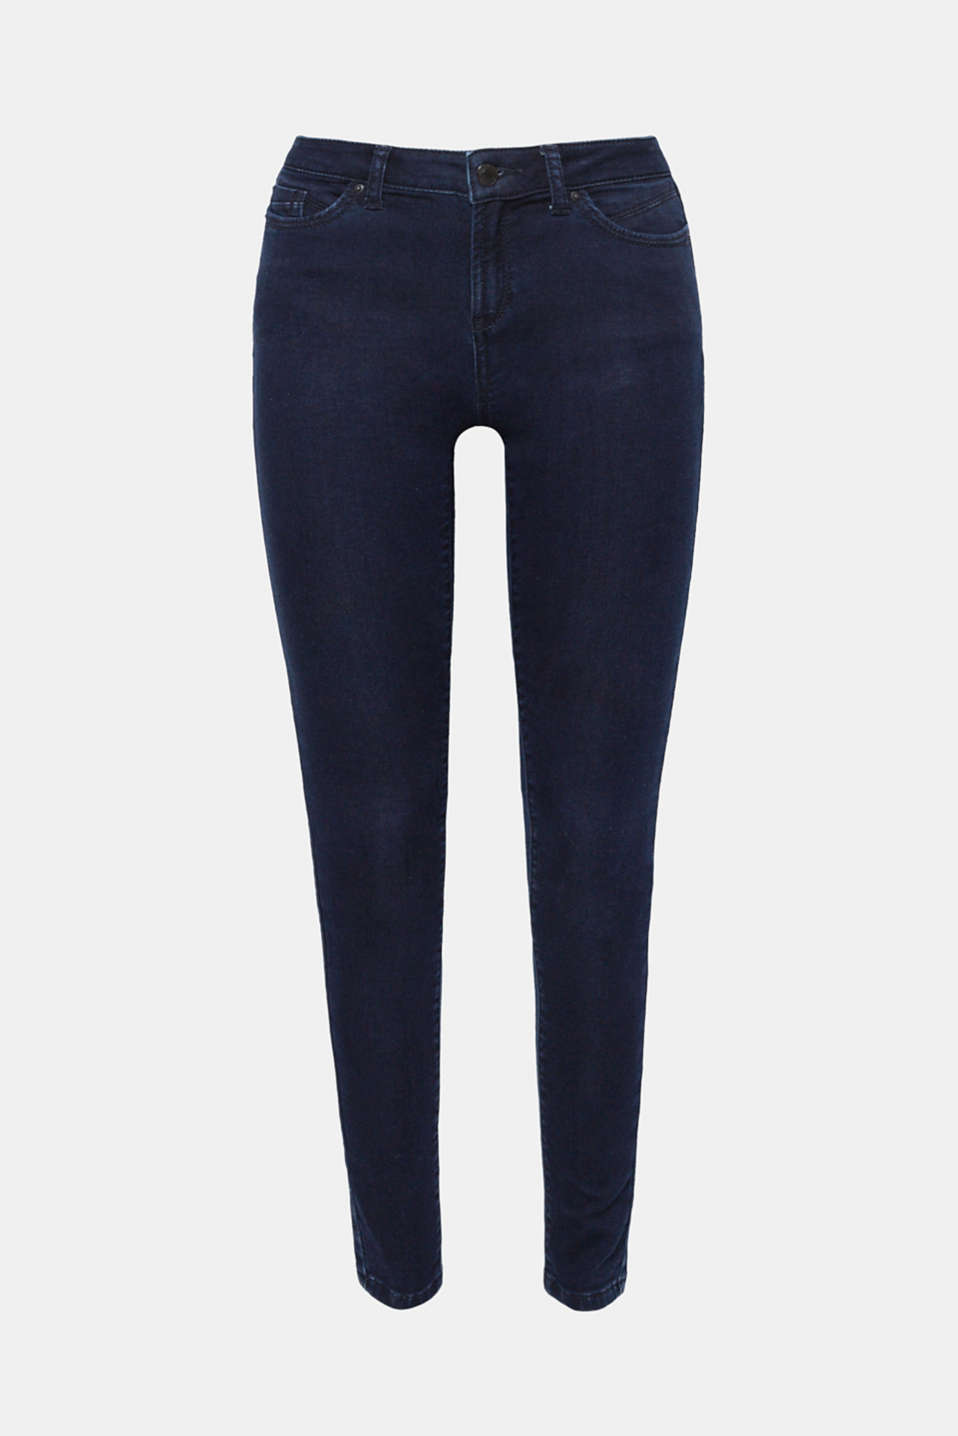 They fit fantastically, are mega comfy, go with lots of your looks and give you new styling ideas: basic, skinny stretch jeans with a sensationally soft outer surface!